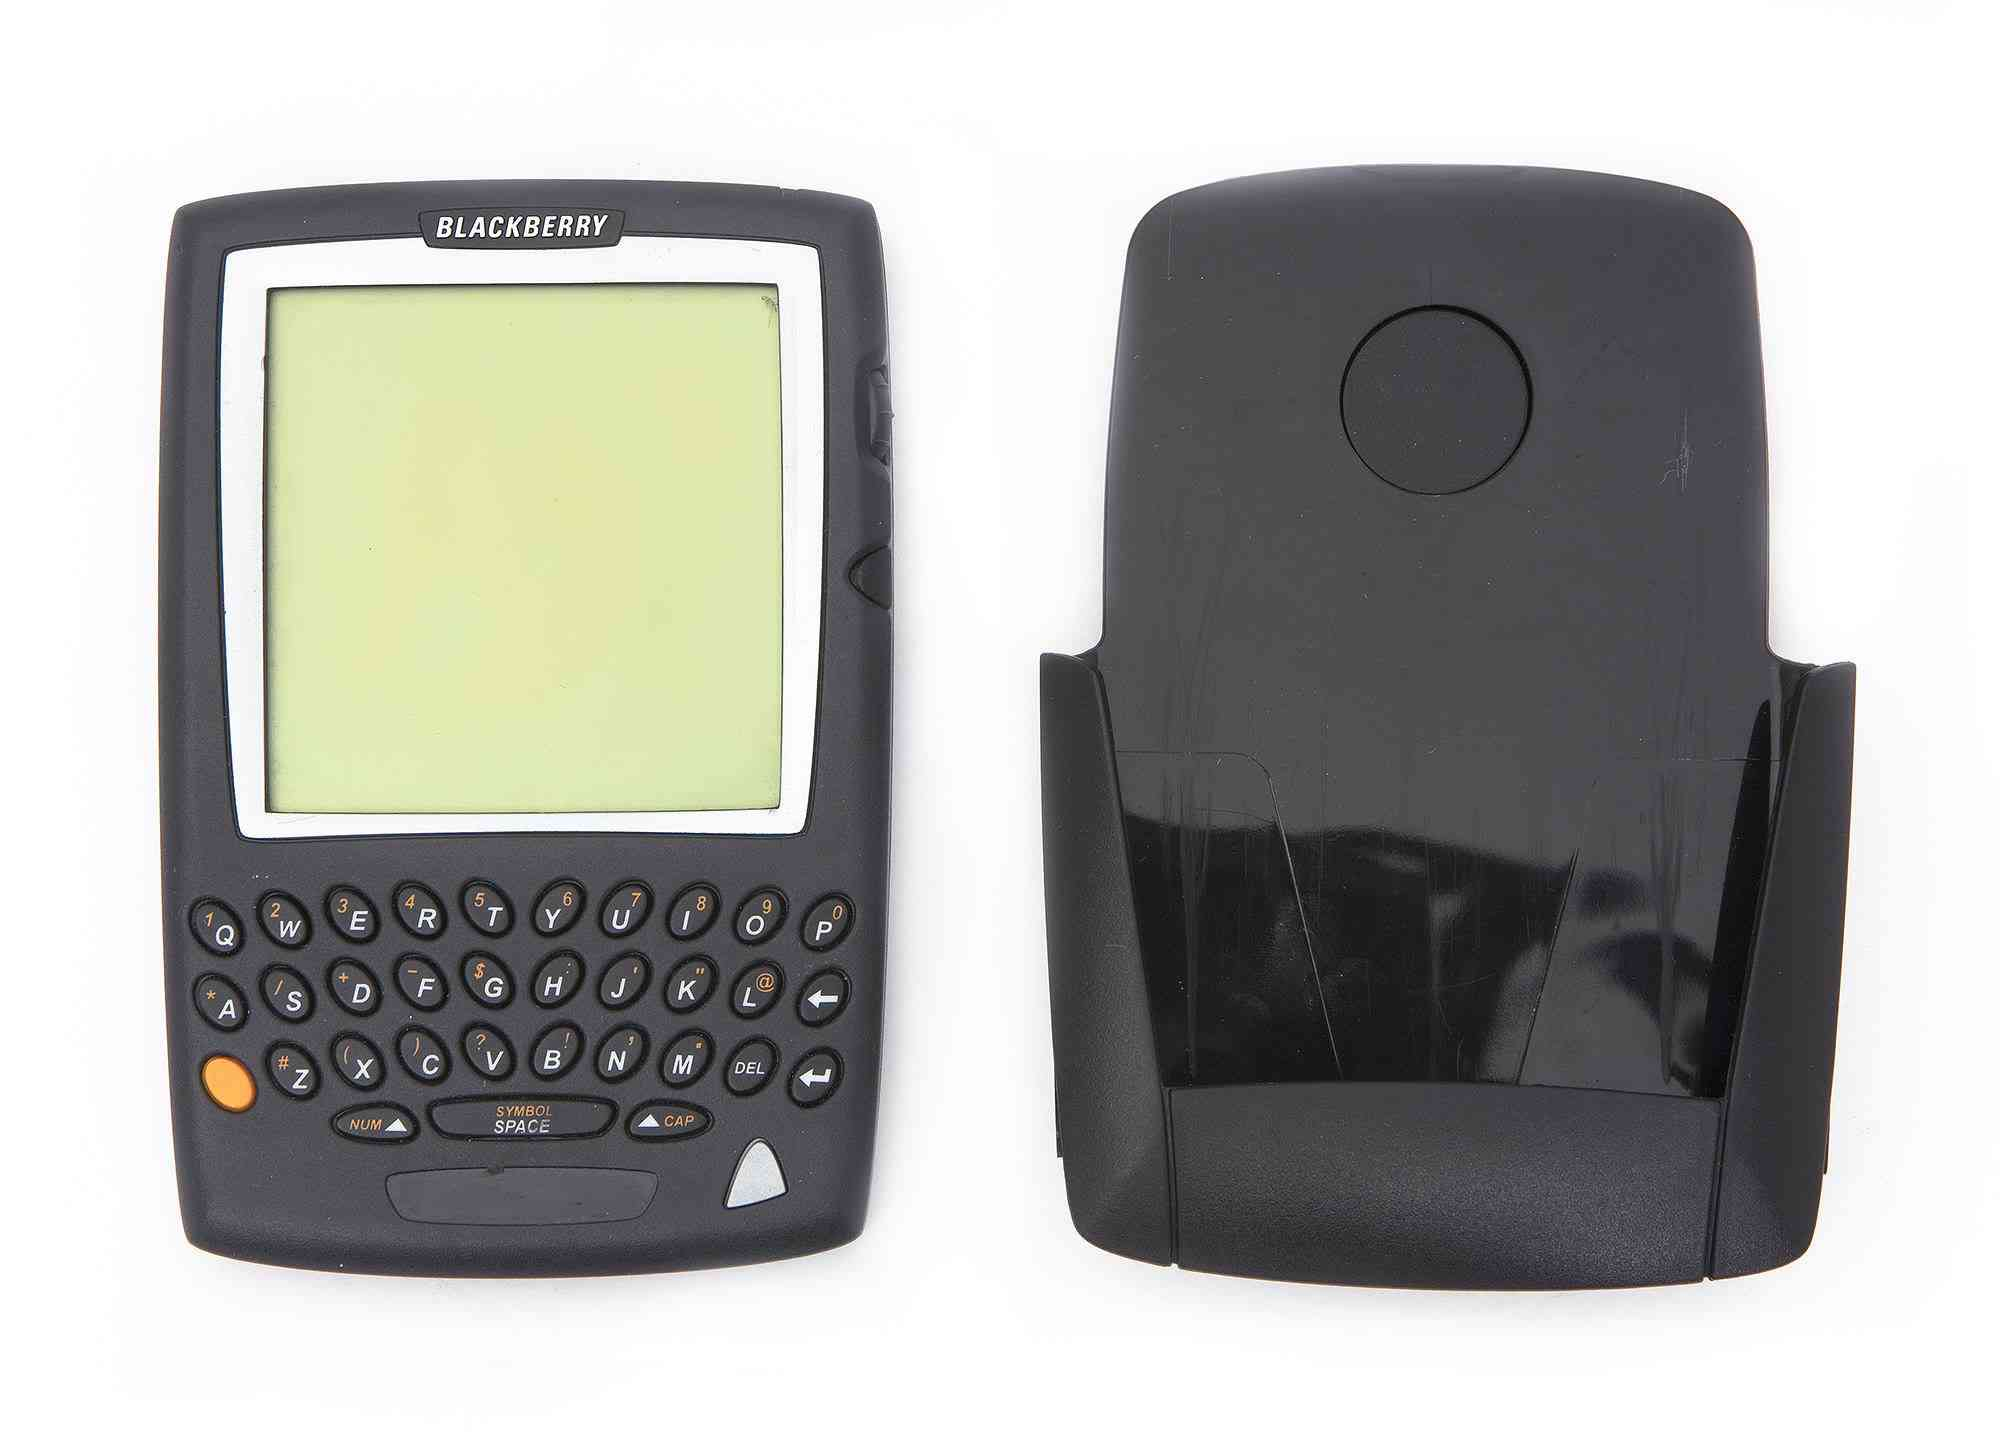 Celular BlackBerry 5810 – 2002